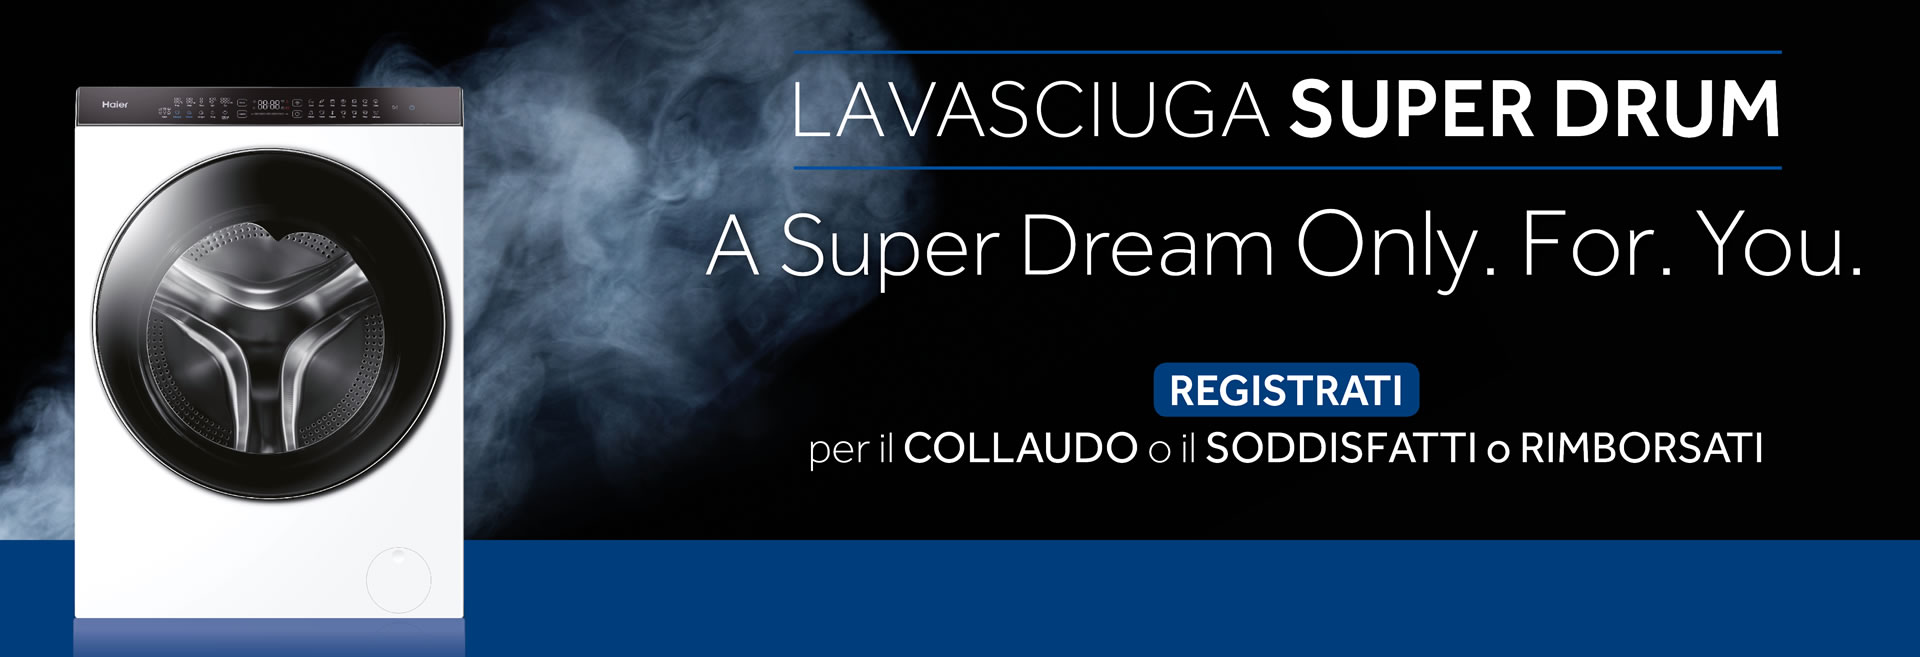 LAVASCIUGA SUPER DRUM HAIER